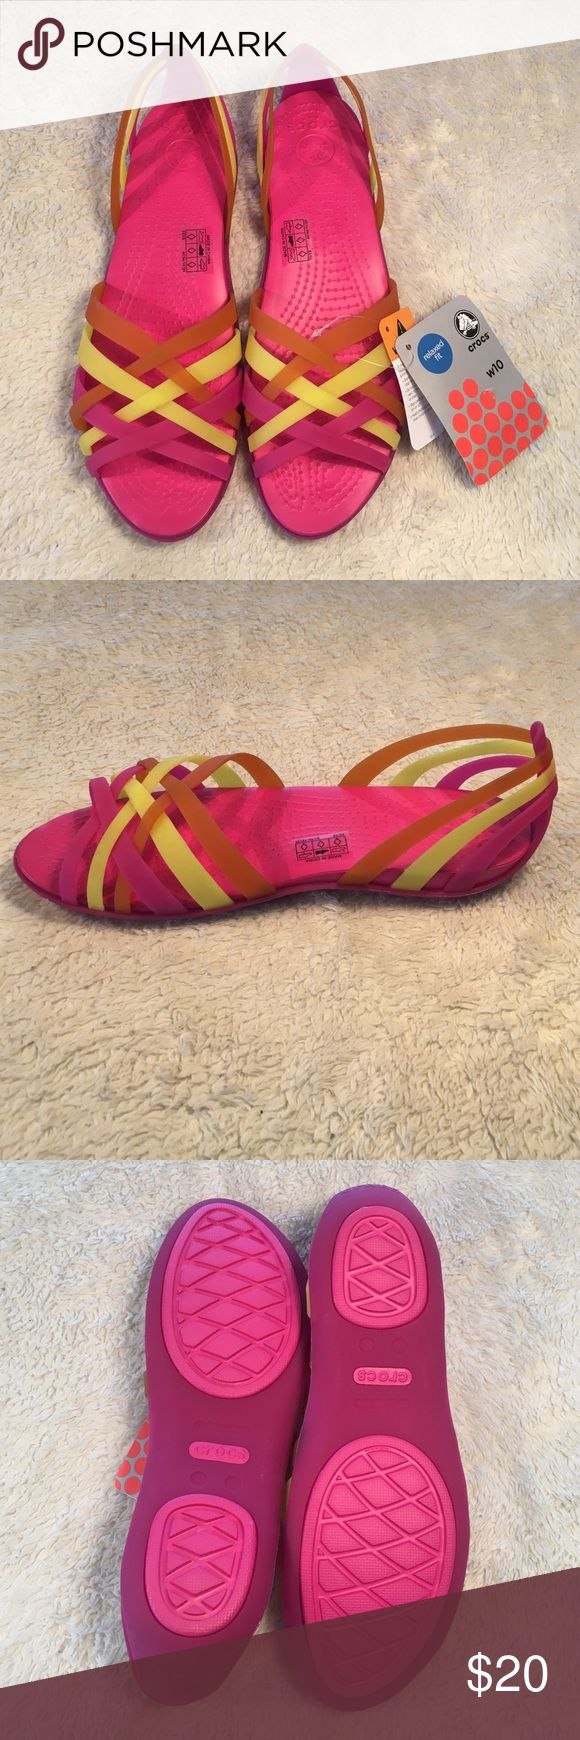 Bright Crocs Huarache Flats | Fuschia/Grapefruit Another Zulily purchase I didn't end up wearing. Comfy style, bright colors. Perfect for summer! CROCS Shoes Sandals